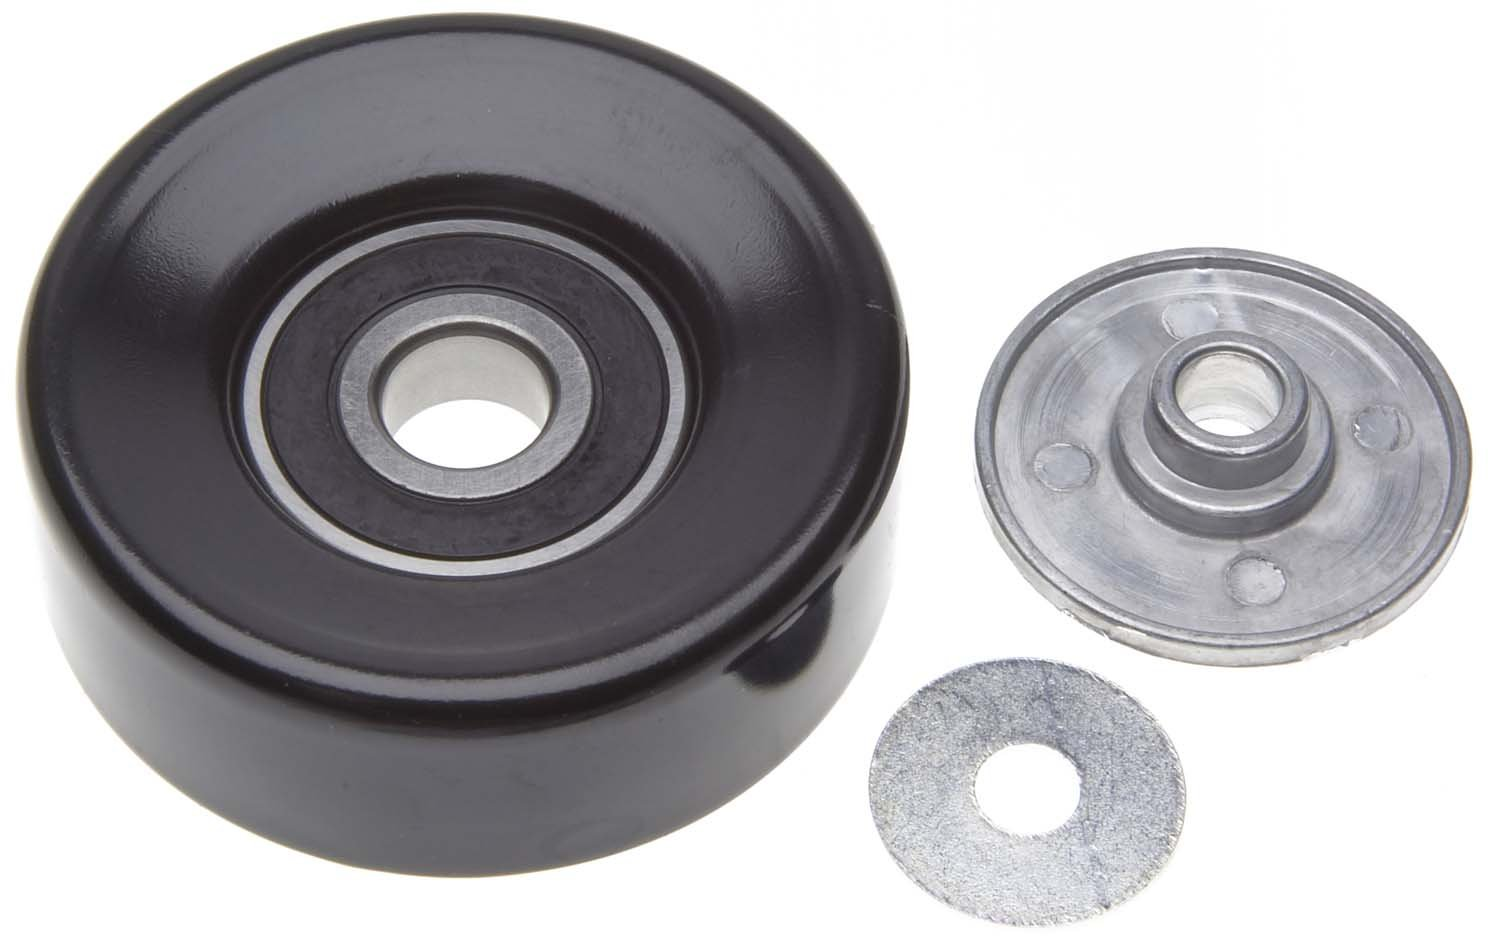 ACDelco 36272 Professional Idler Pulley with 10 mm Bushing and 10 mm I.D. Washer